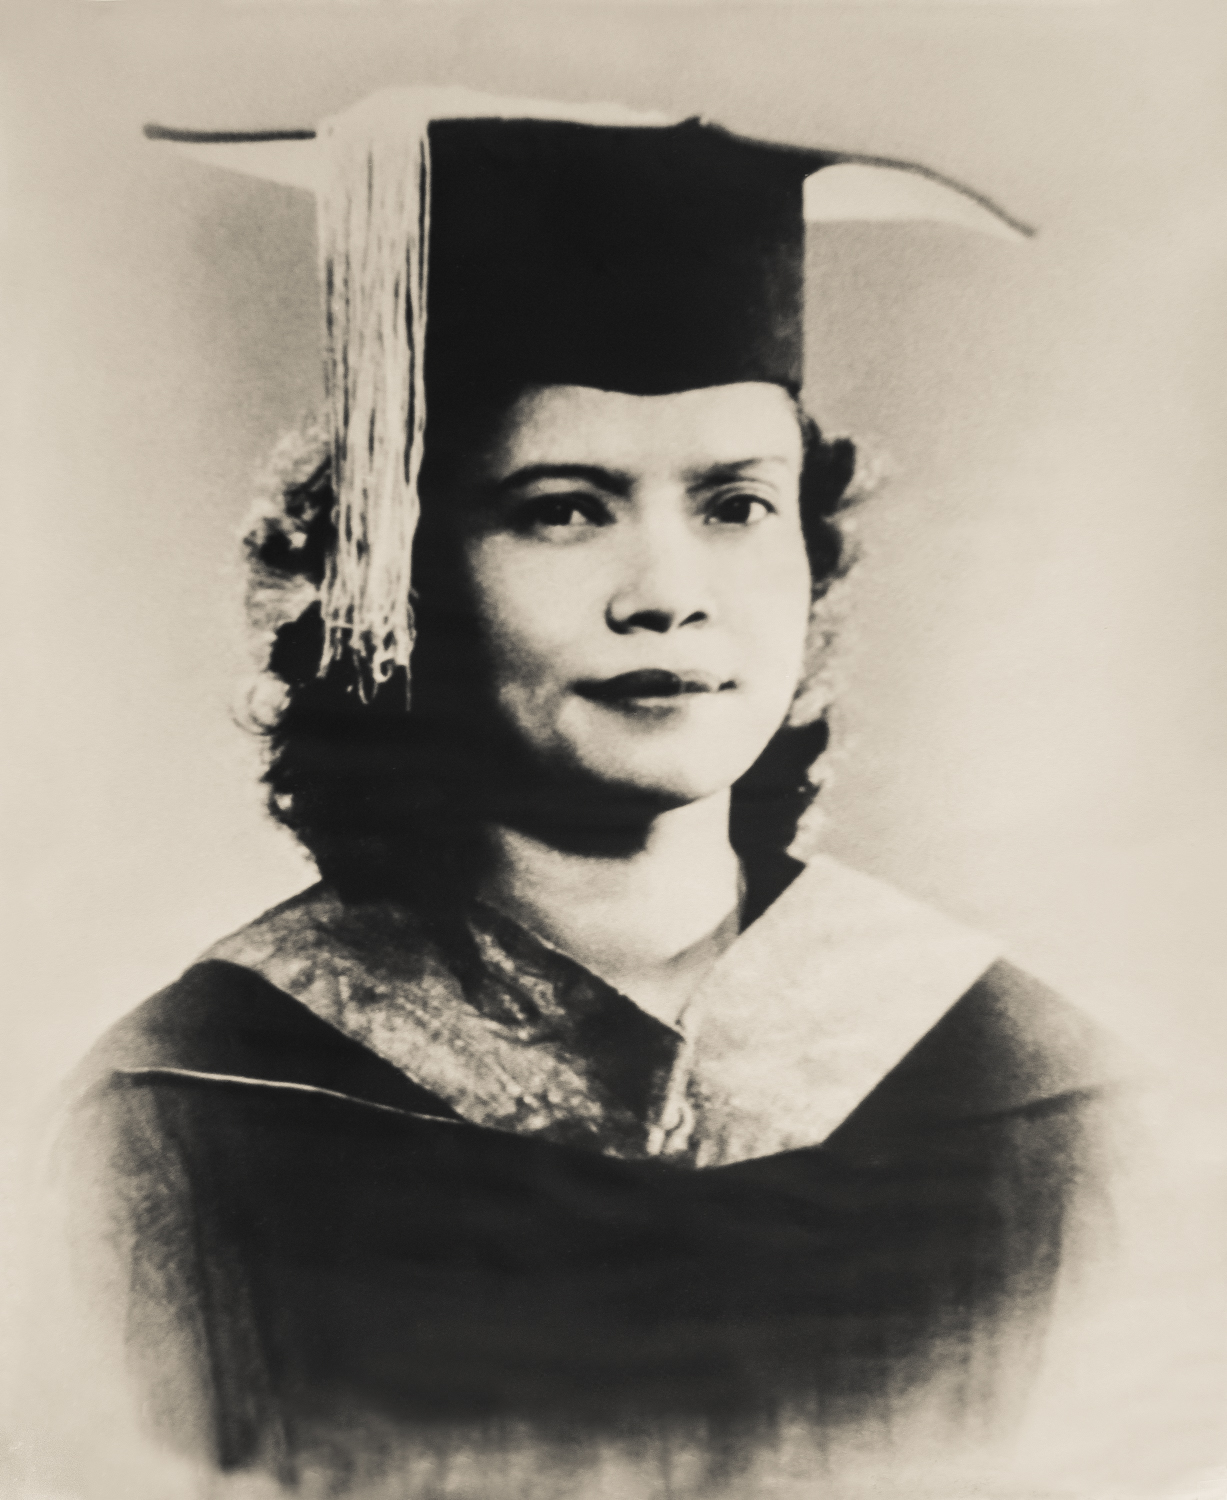 My grandmother's restored graduation portrait, photographer unknown ...